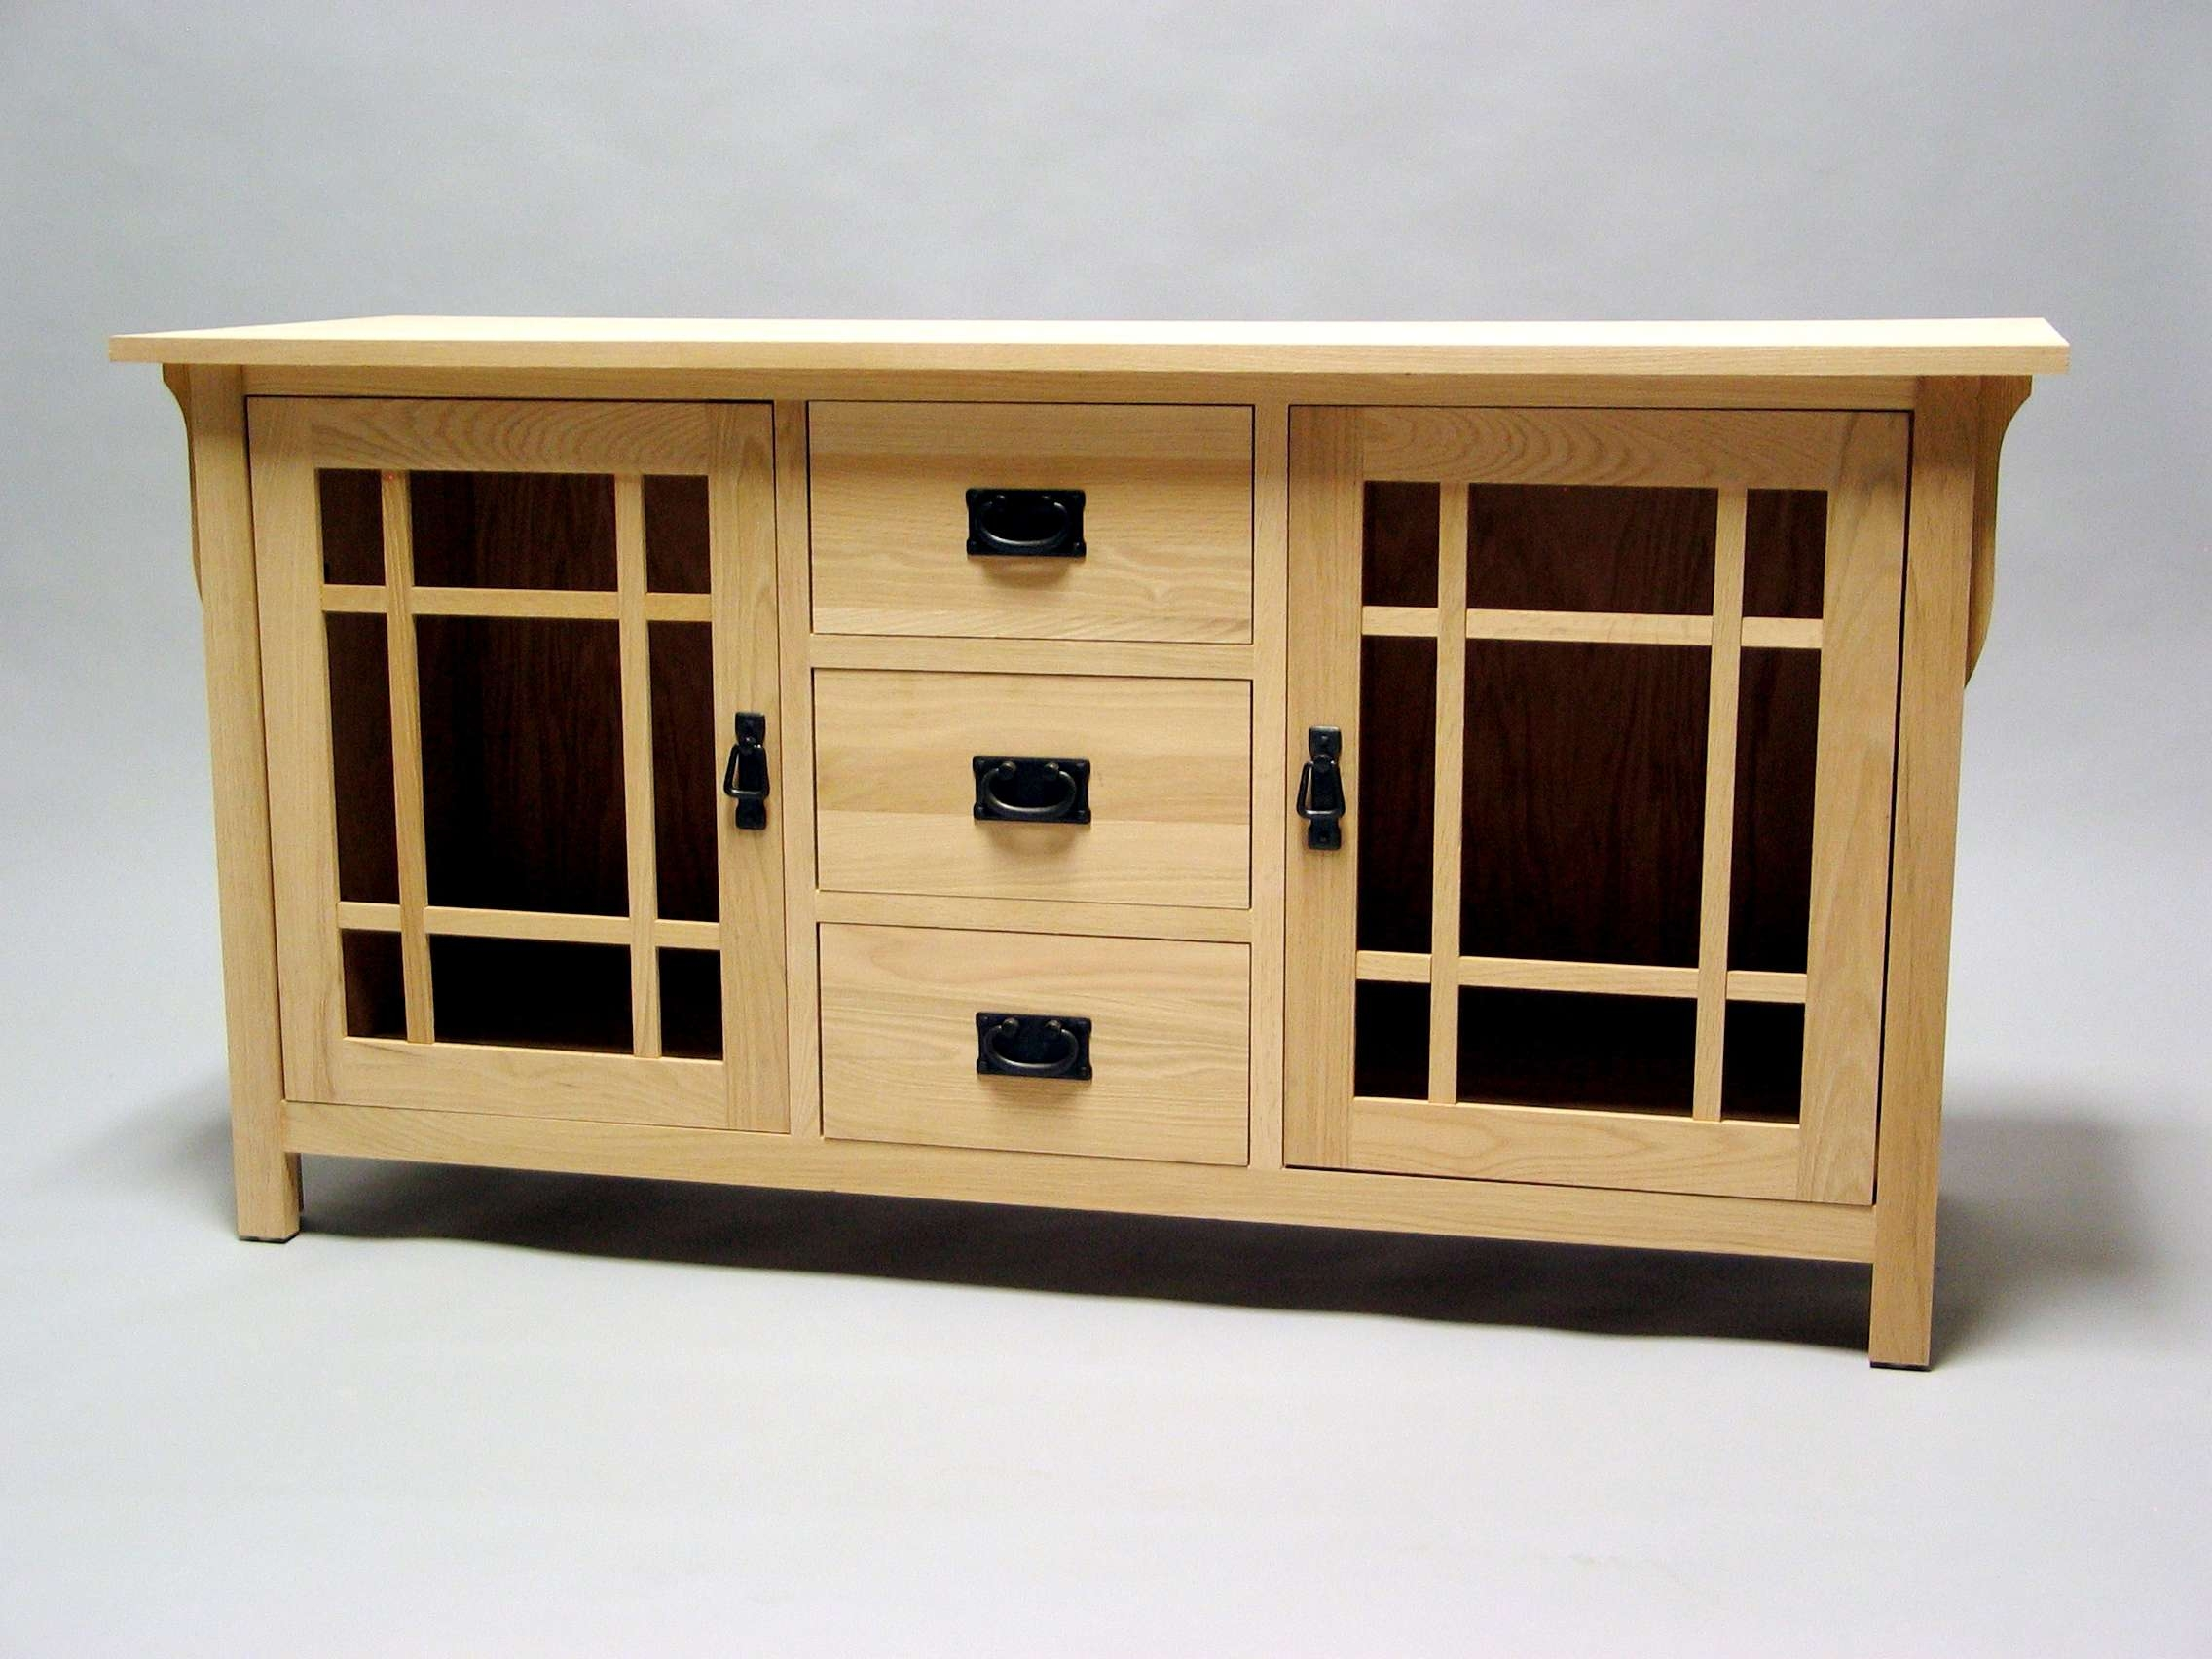 Unfinished Wood Tv Stand Inside Maple Wood Tv Stands (View 15 of 15)